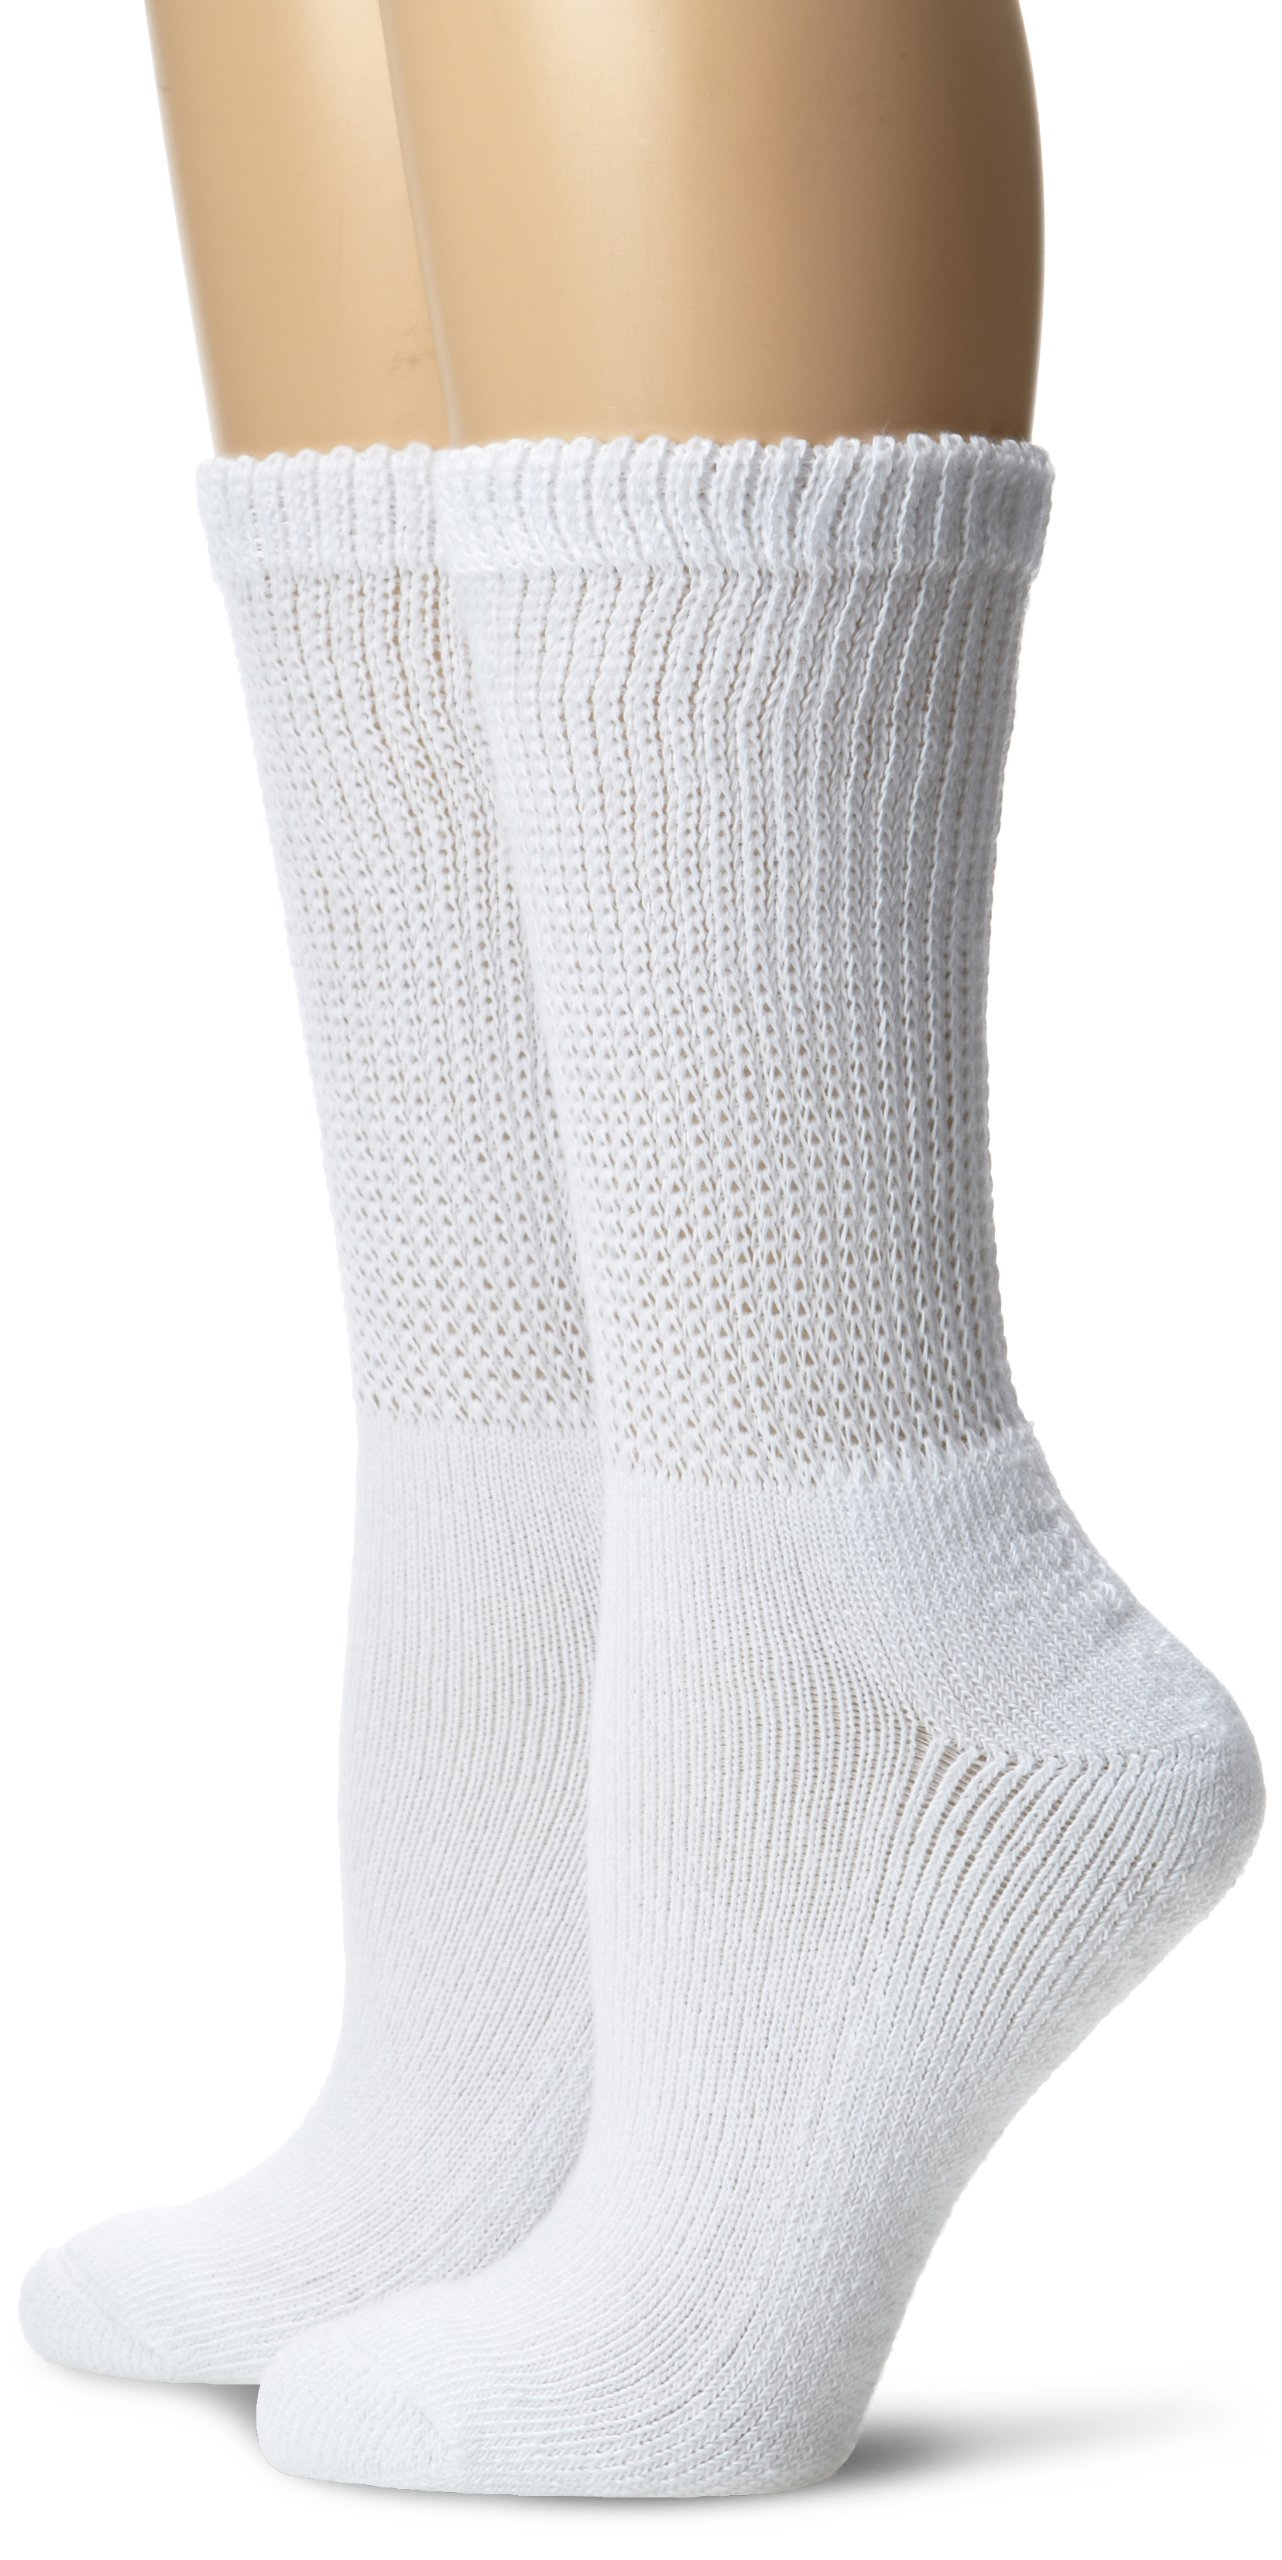 Dr. Scholl's Women's 2 Pack Diabetes Circulatory Crew Socks